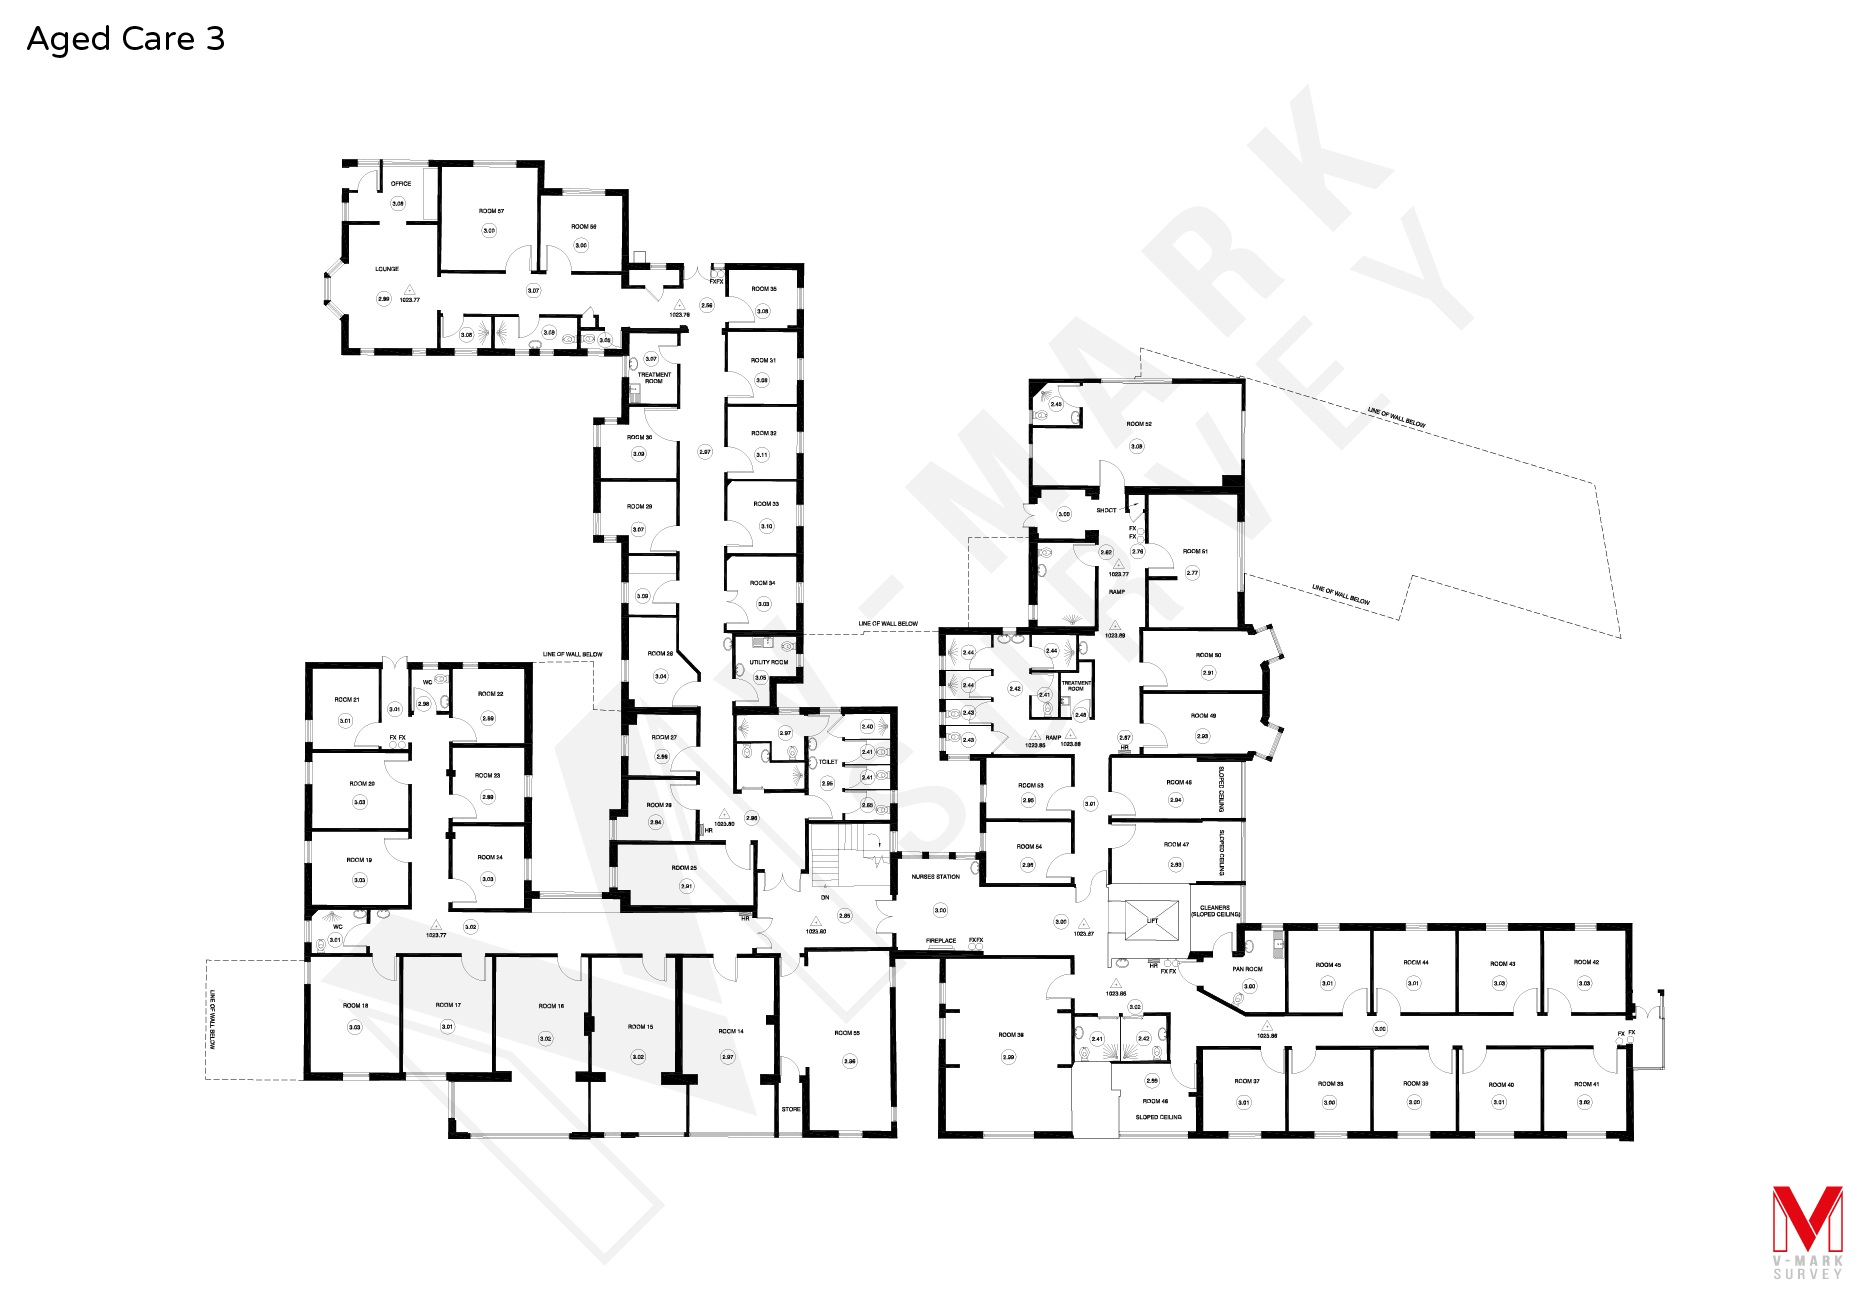 Aged Care Floorplans